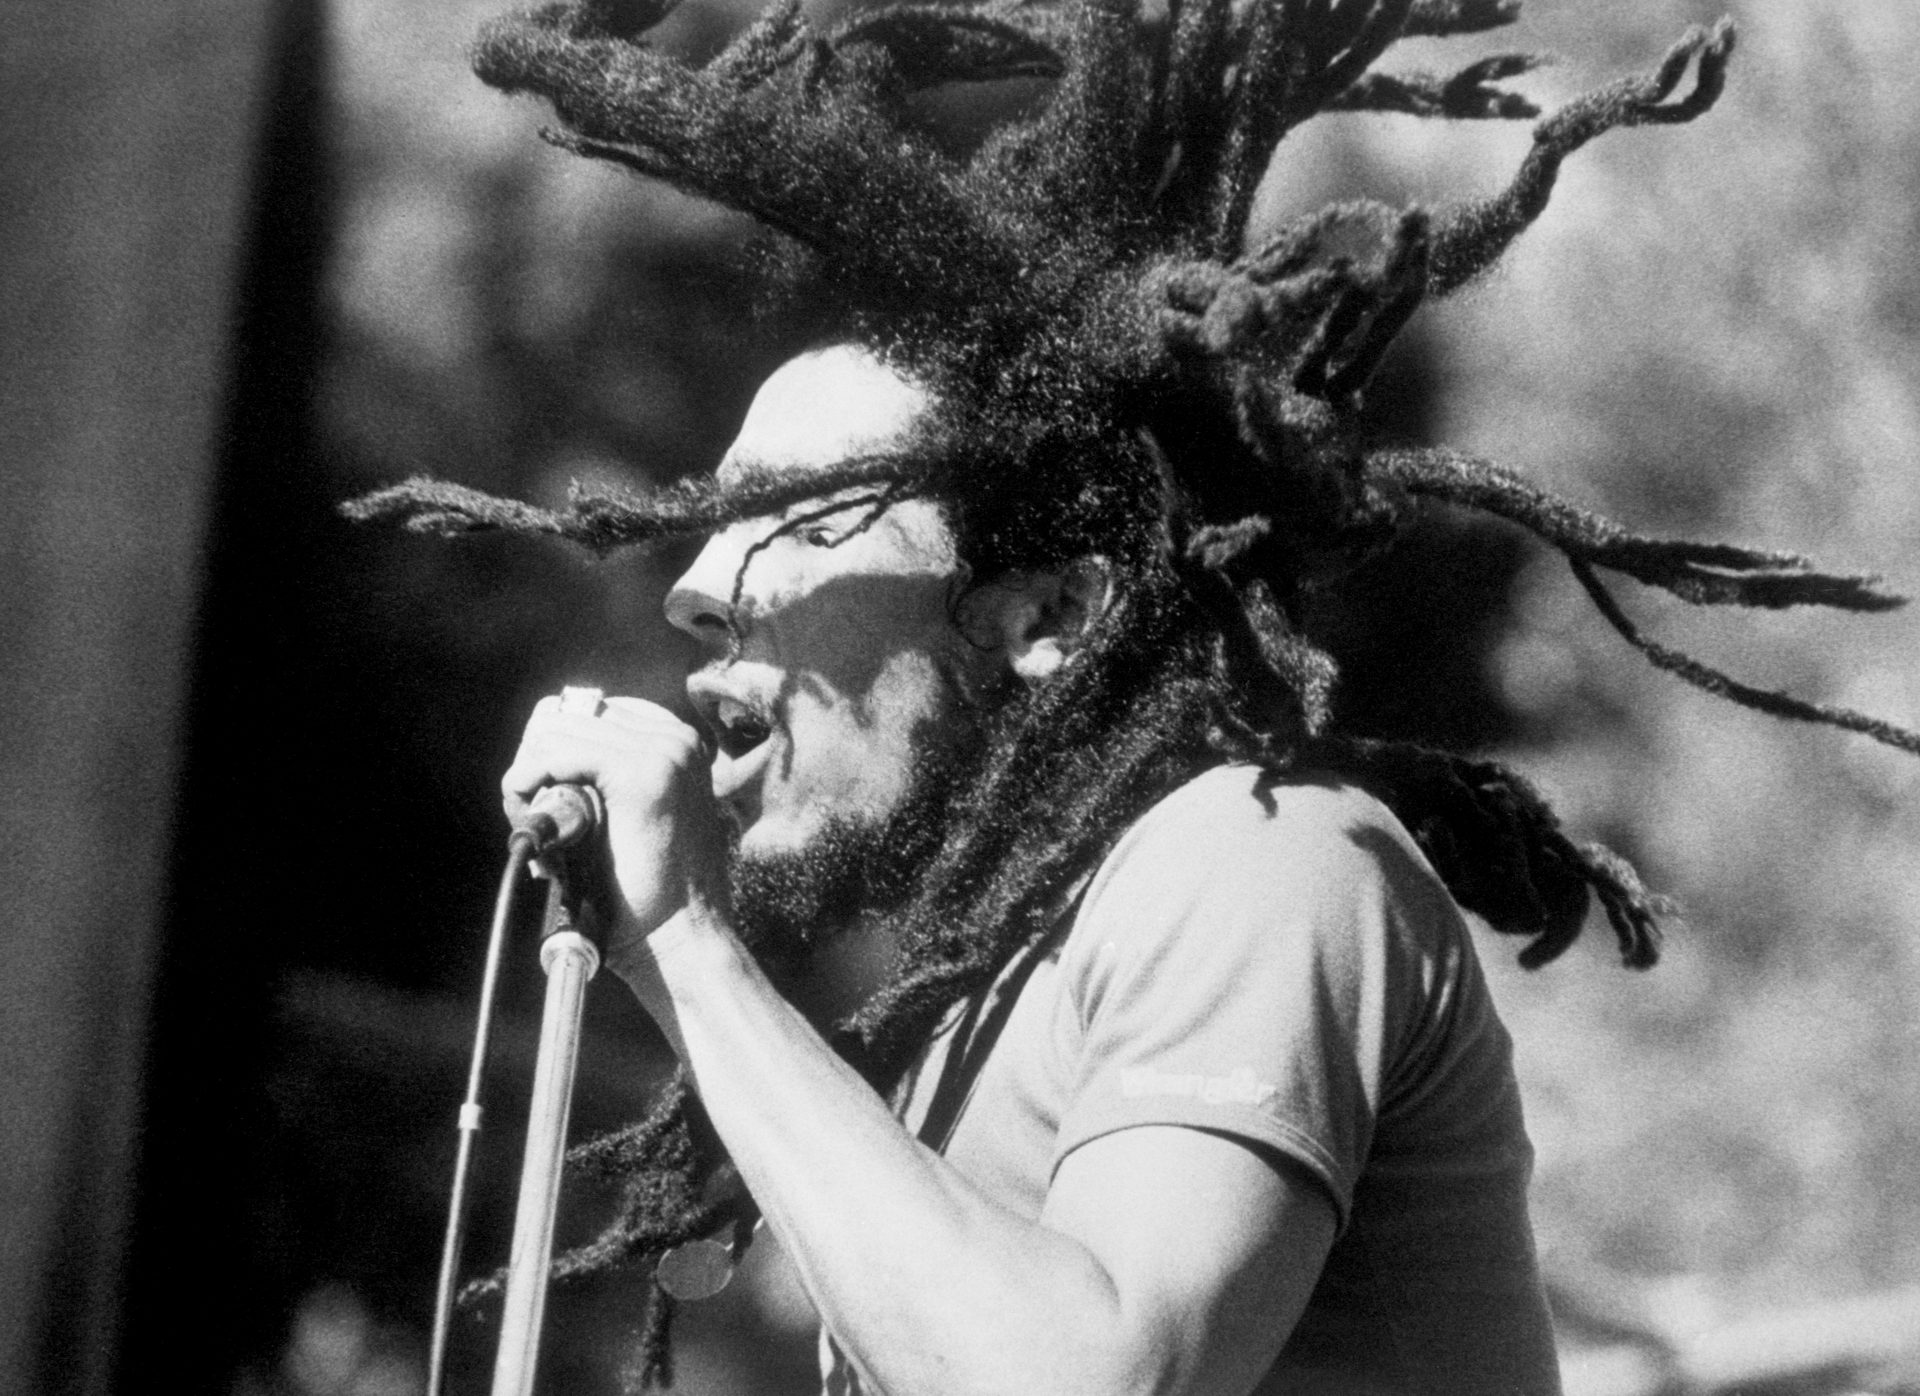 Jamaican Reggae singer Bob Marley on stage. Credit: PA/PA Archive/PA Images